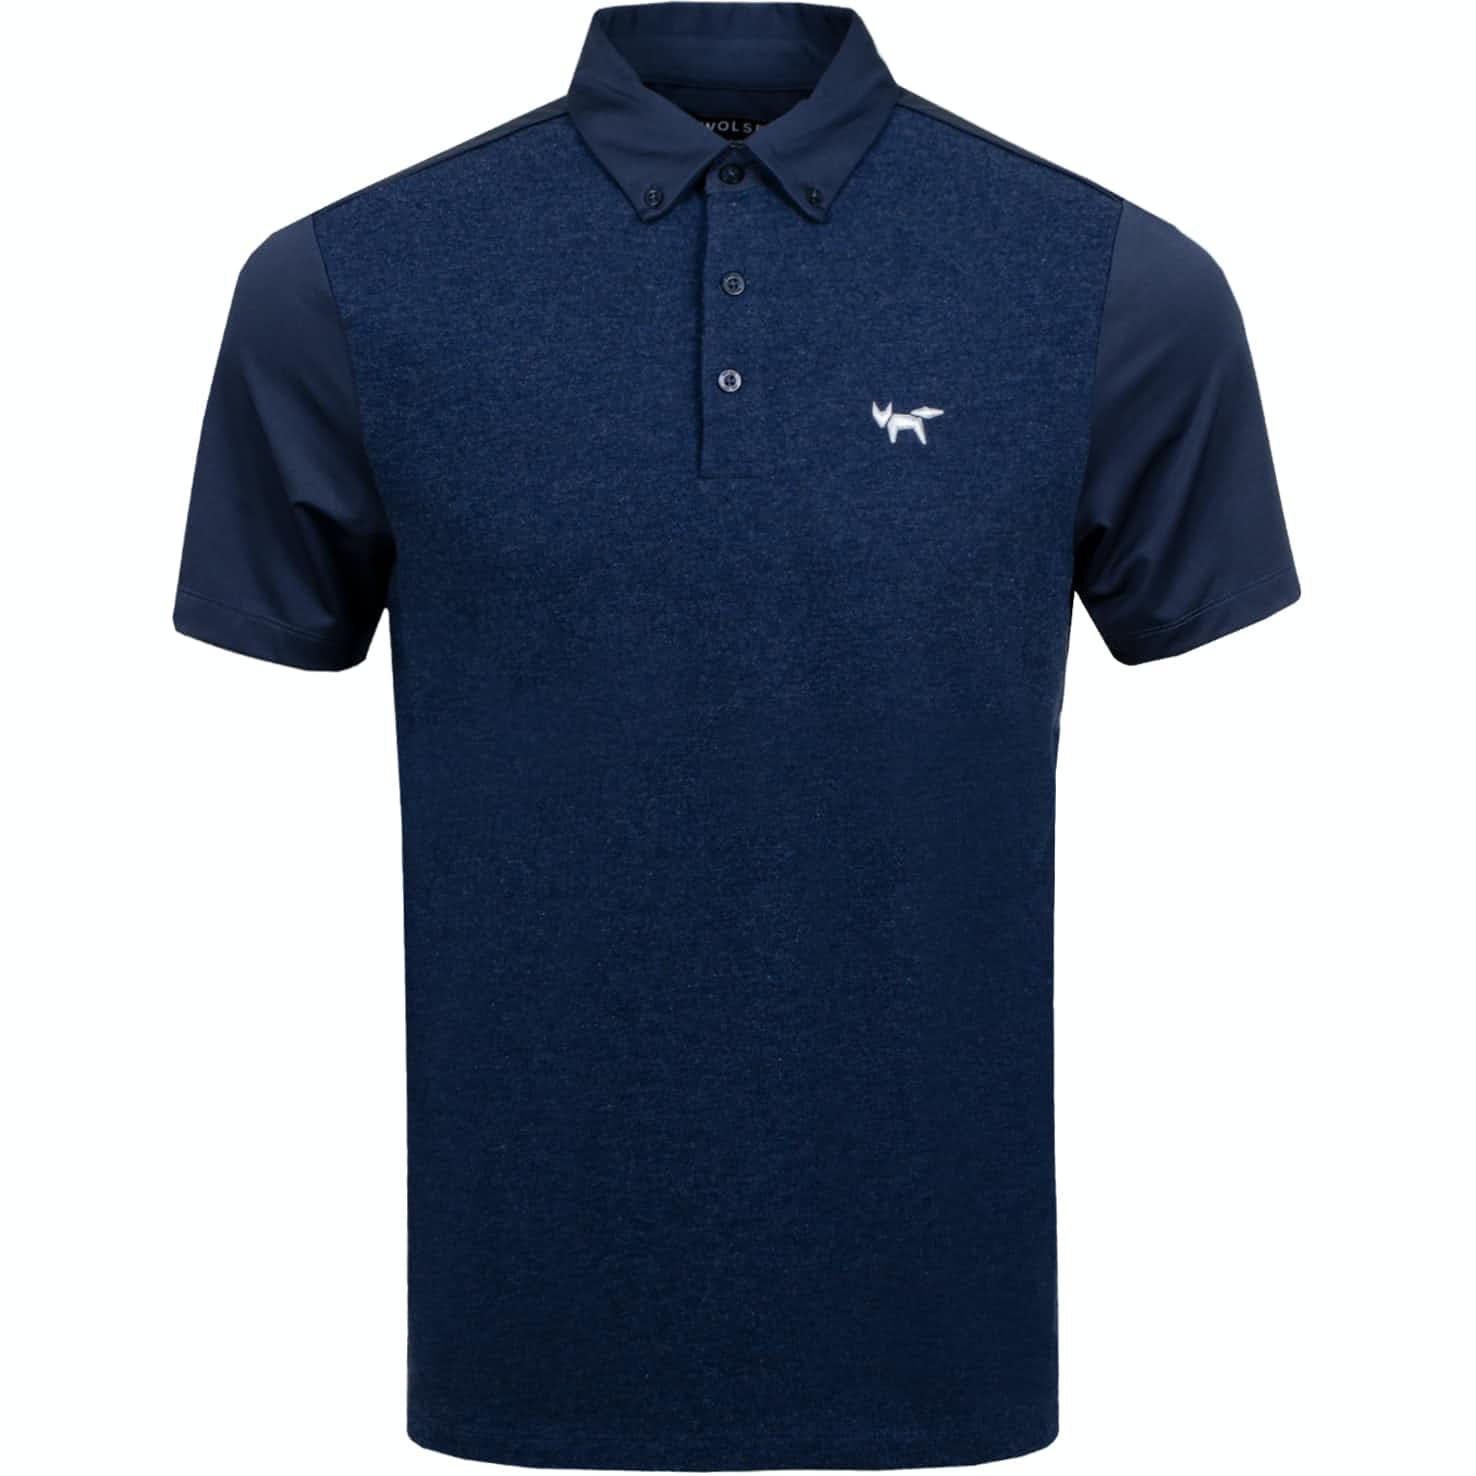 Heathered Jersey Mix Polo Total Eclipse - AW19